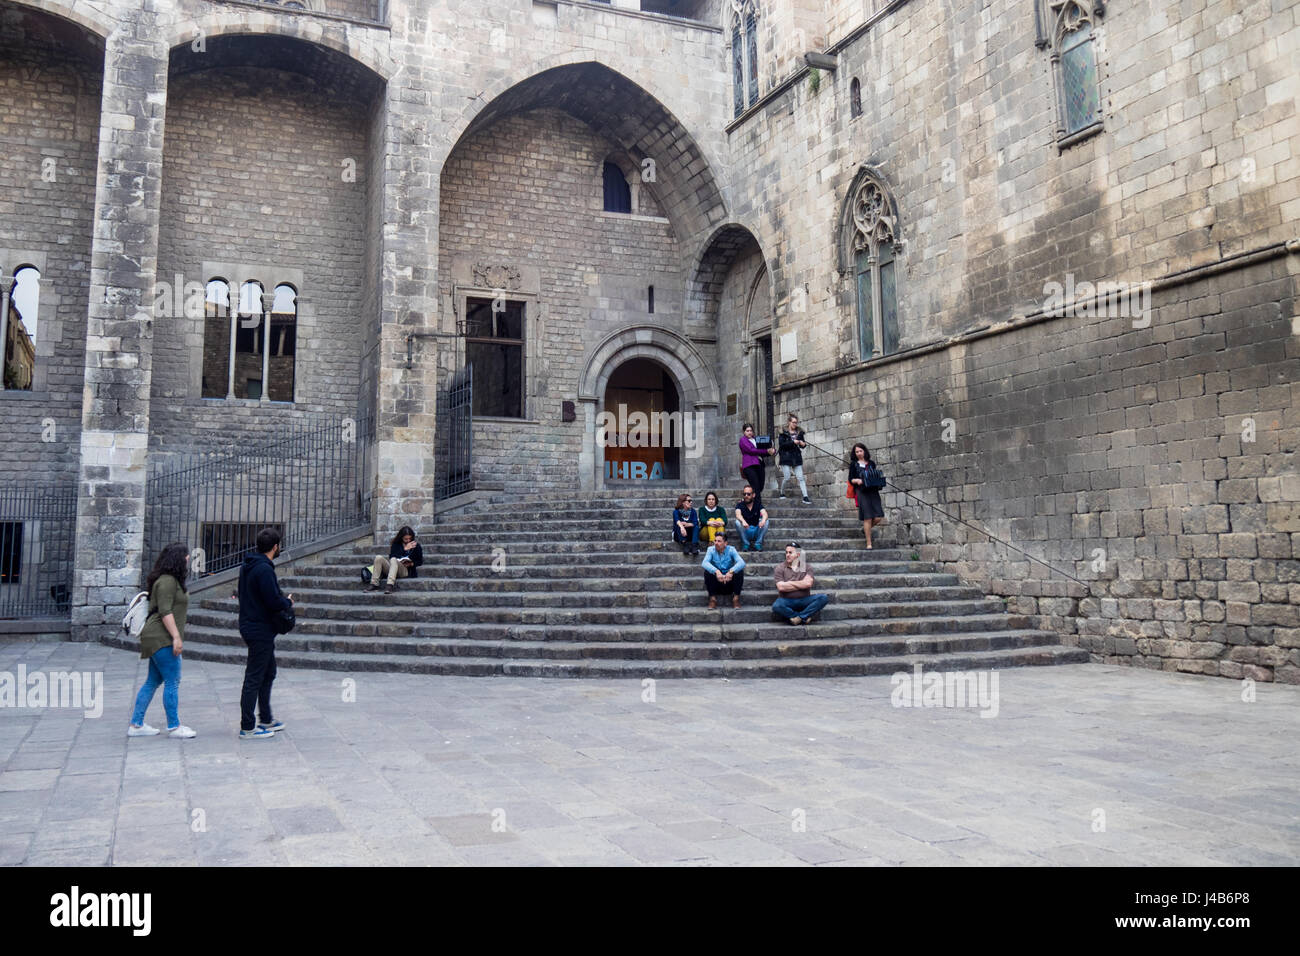 People sitting the steps leading to the Saló del Tinell and the Chapel of St. Agatha at Placa del Rei, Barcelona, - Stock Image